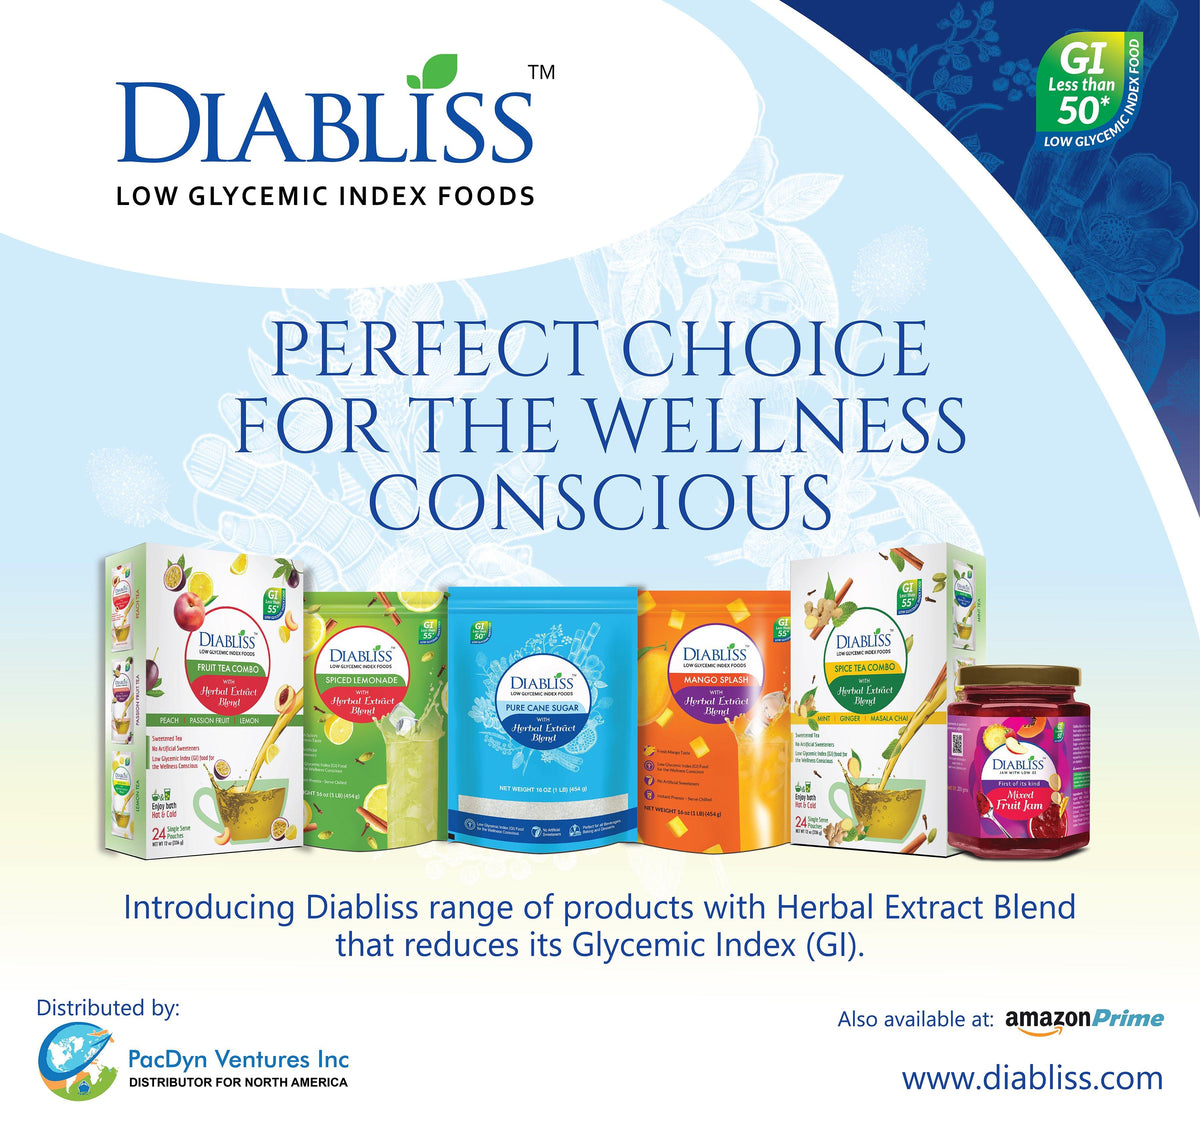 Diabliss Gift Cards